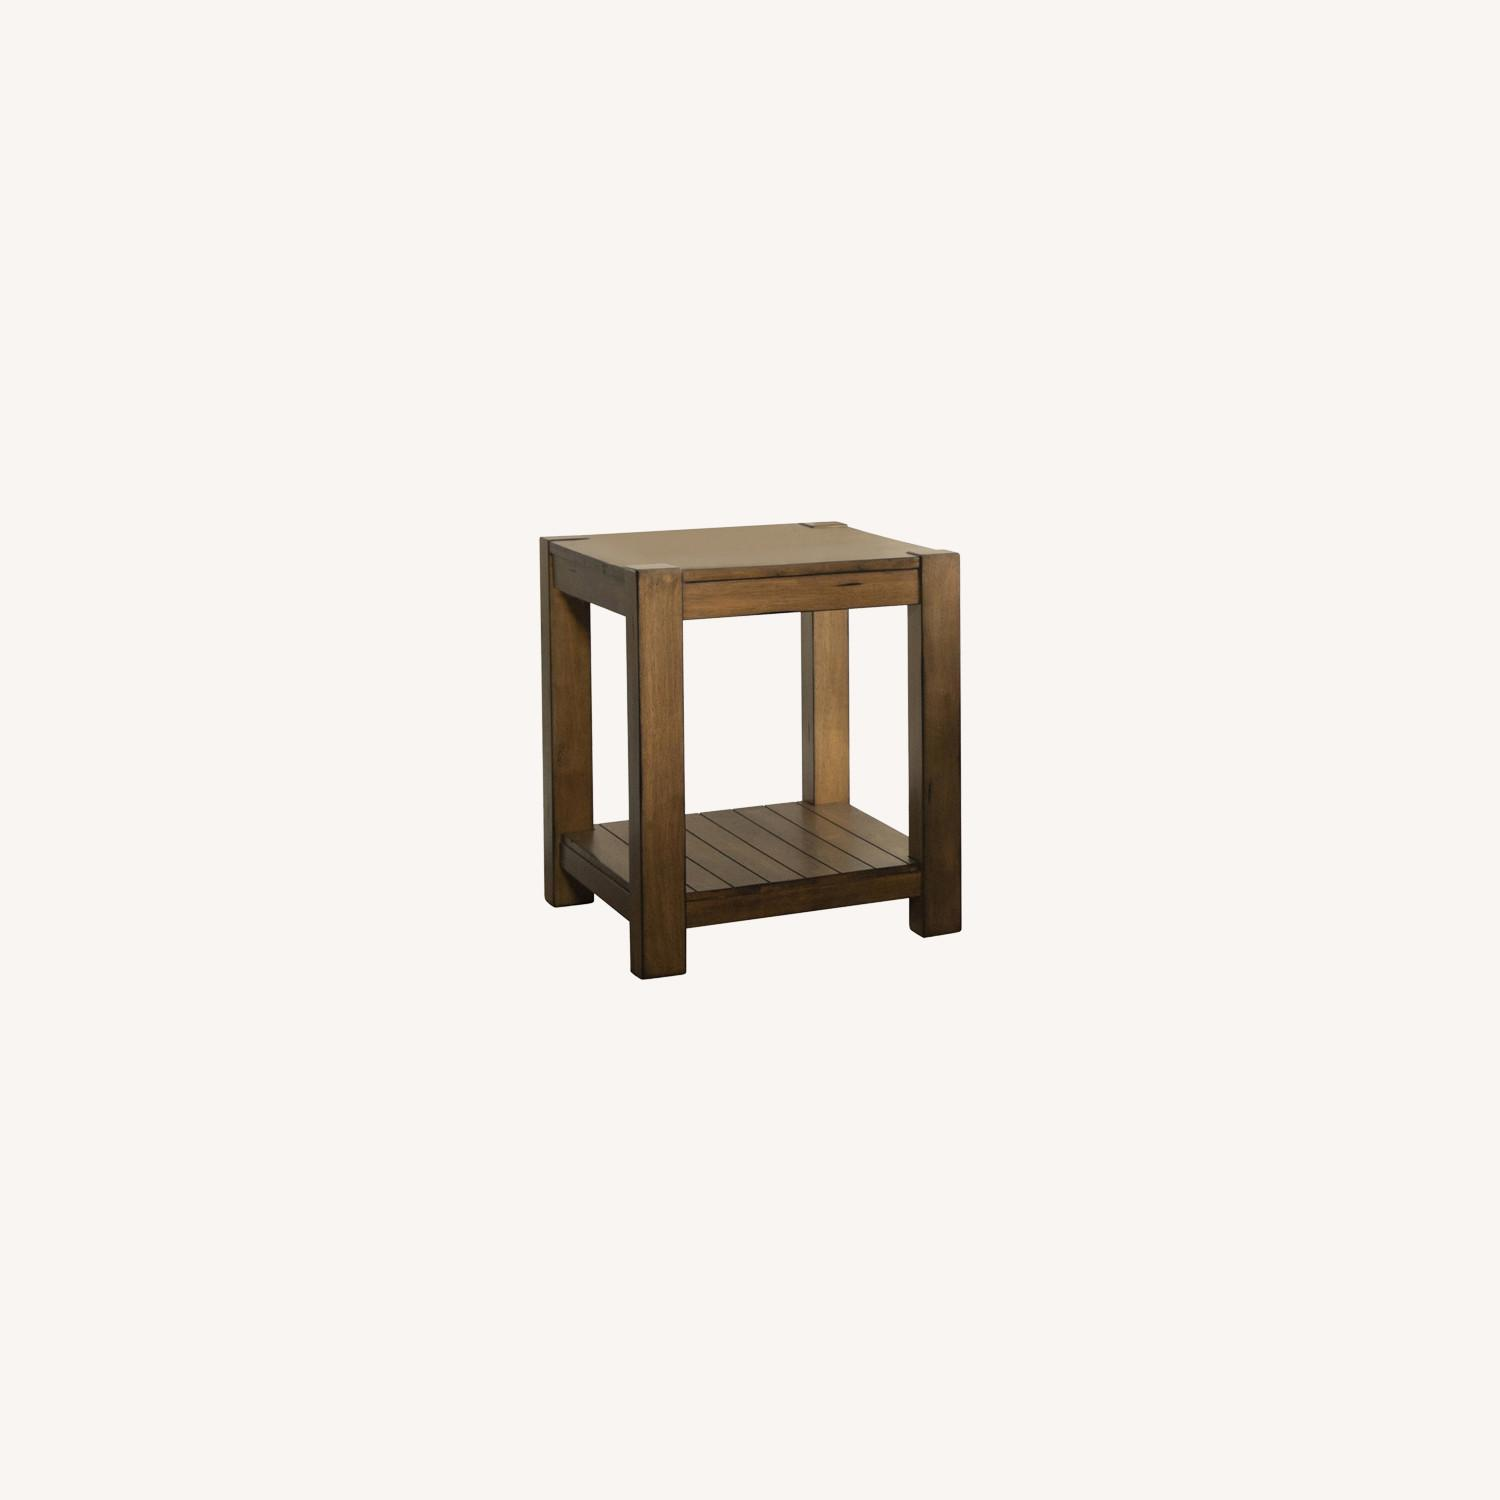 End Table In Solid Wood Rustic Brown Finish - image-4